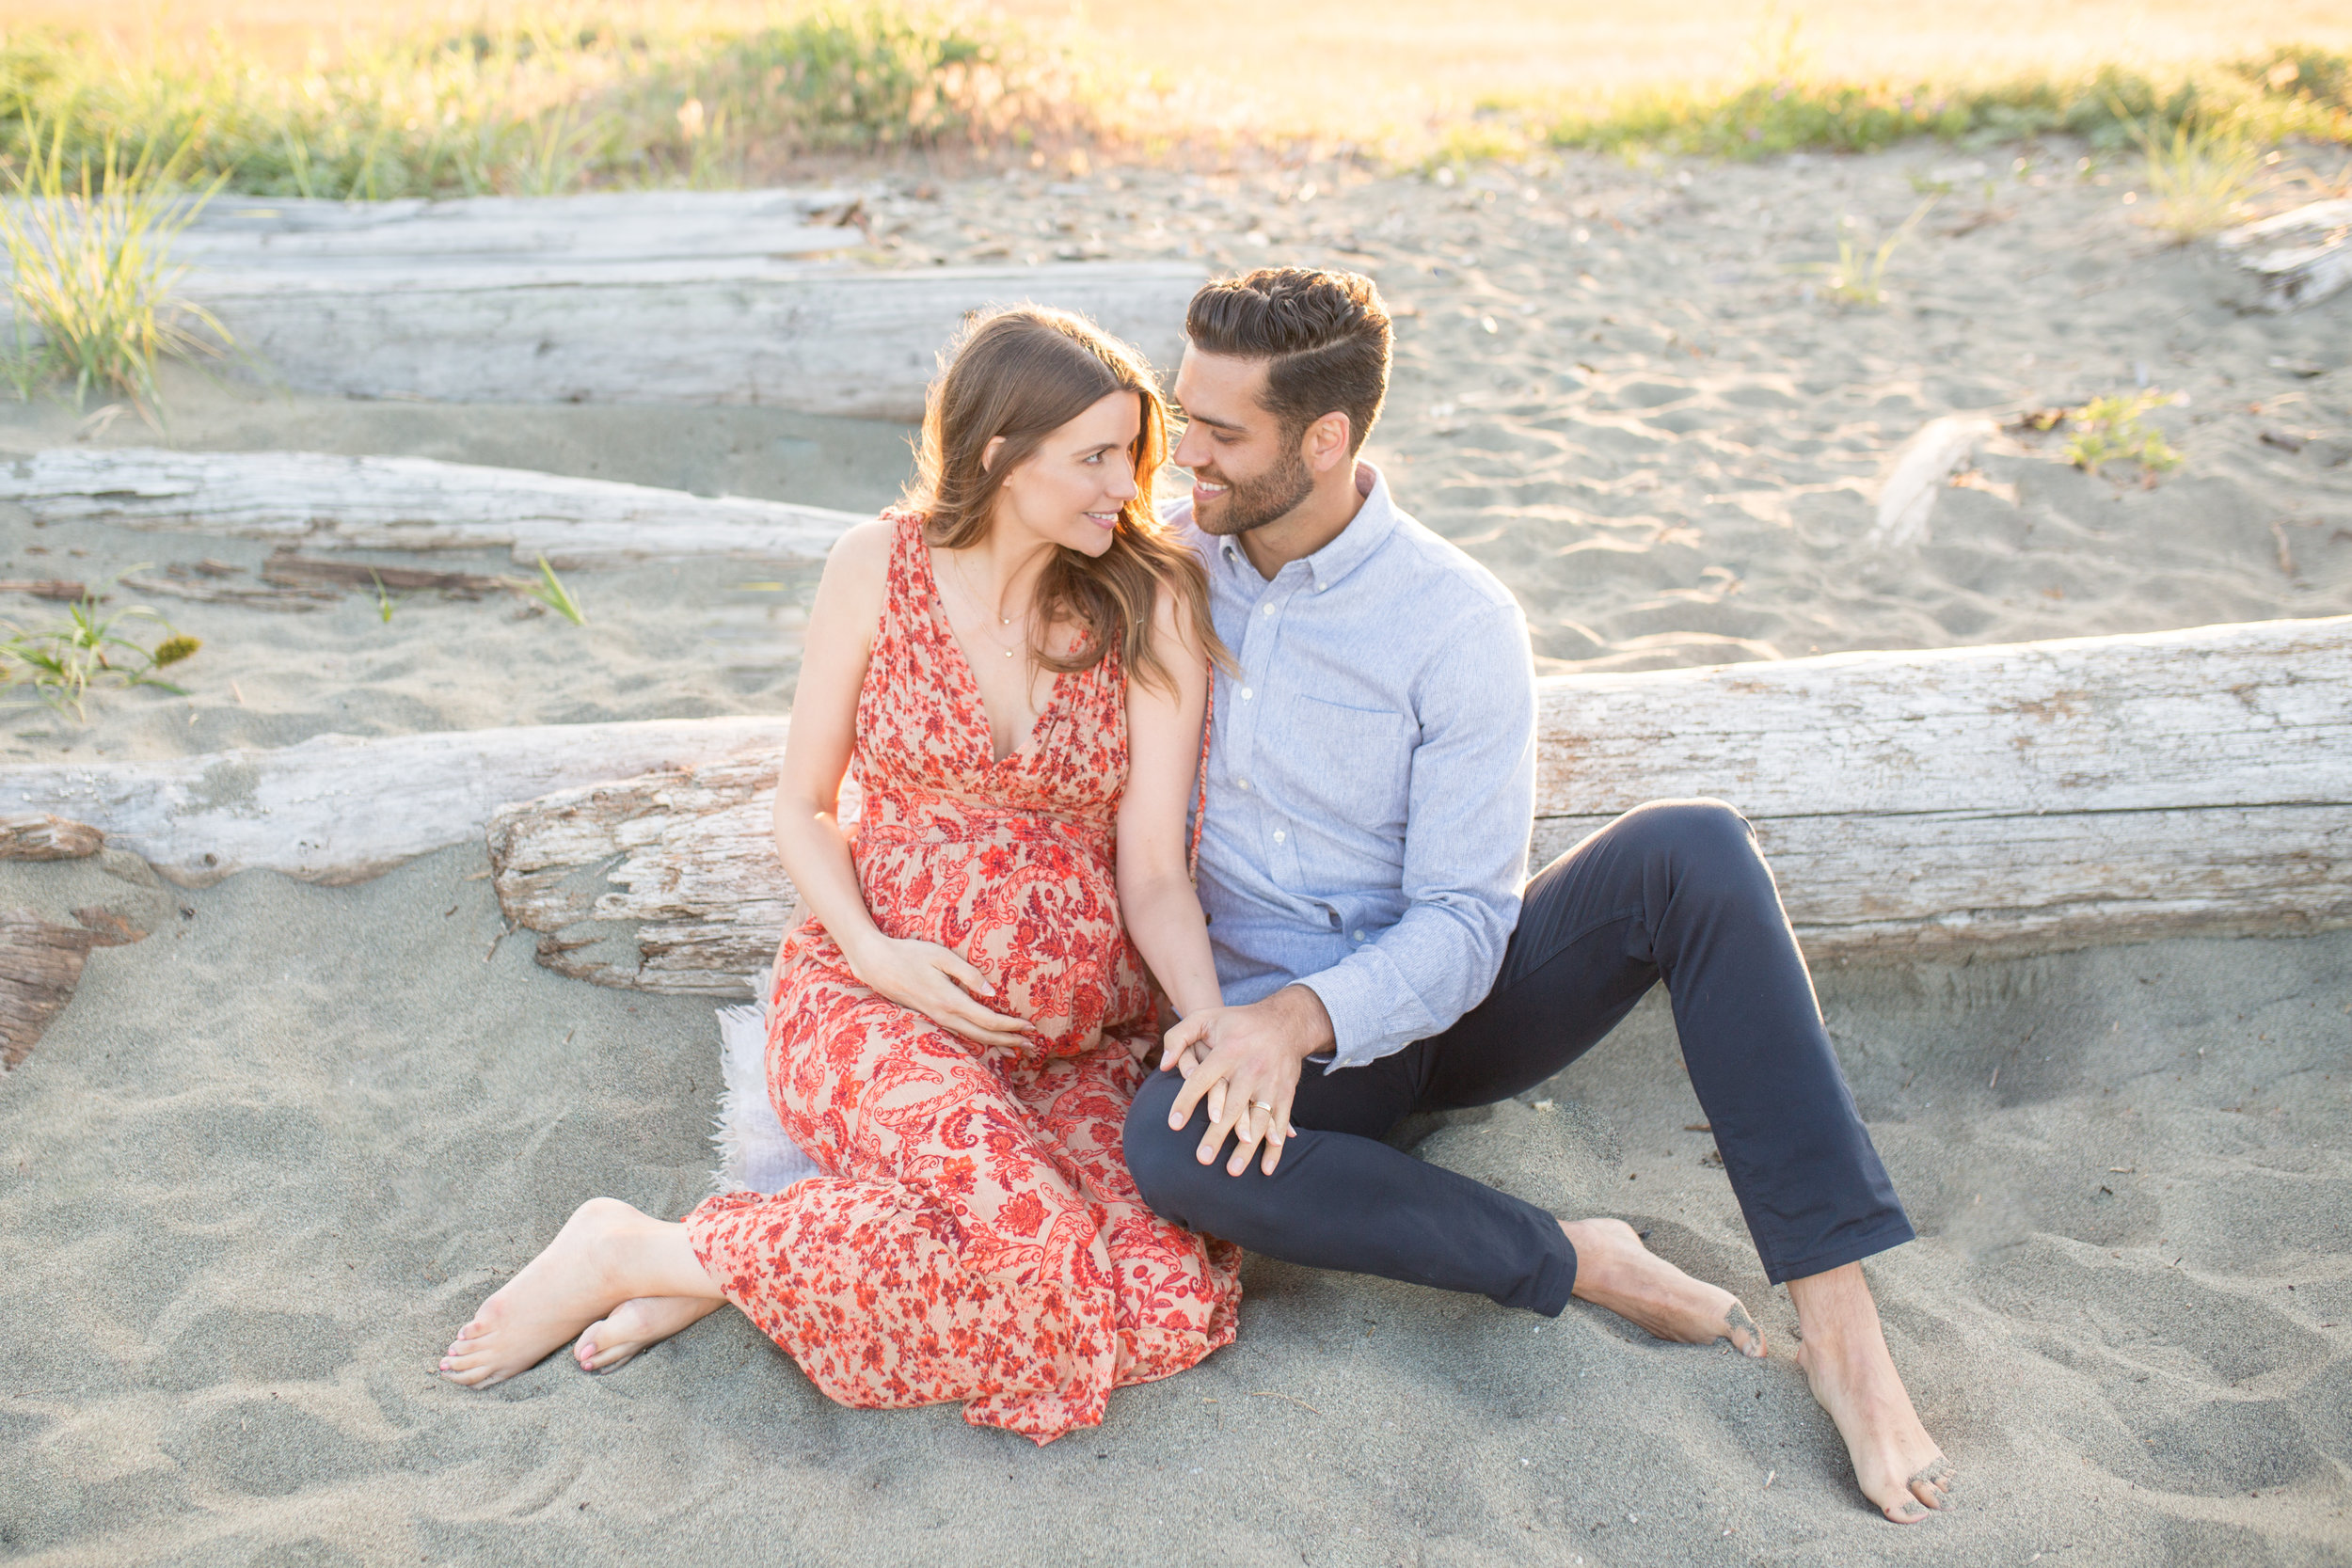 Centennial Beach Maternity Photos -31.jpg